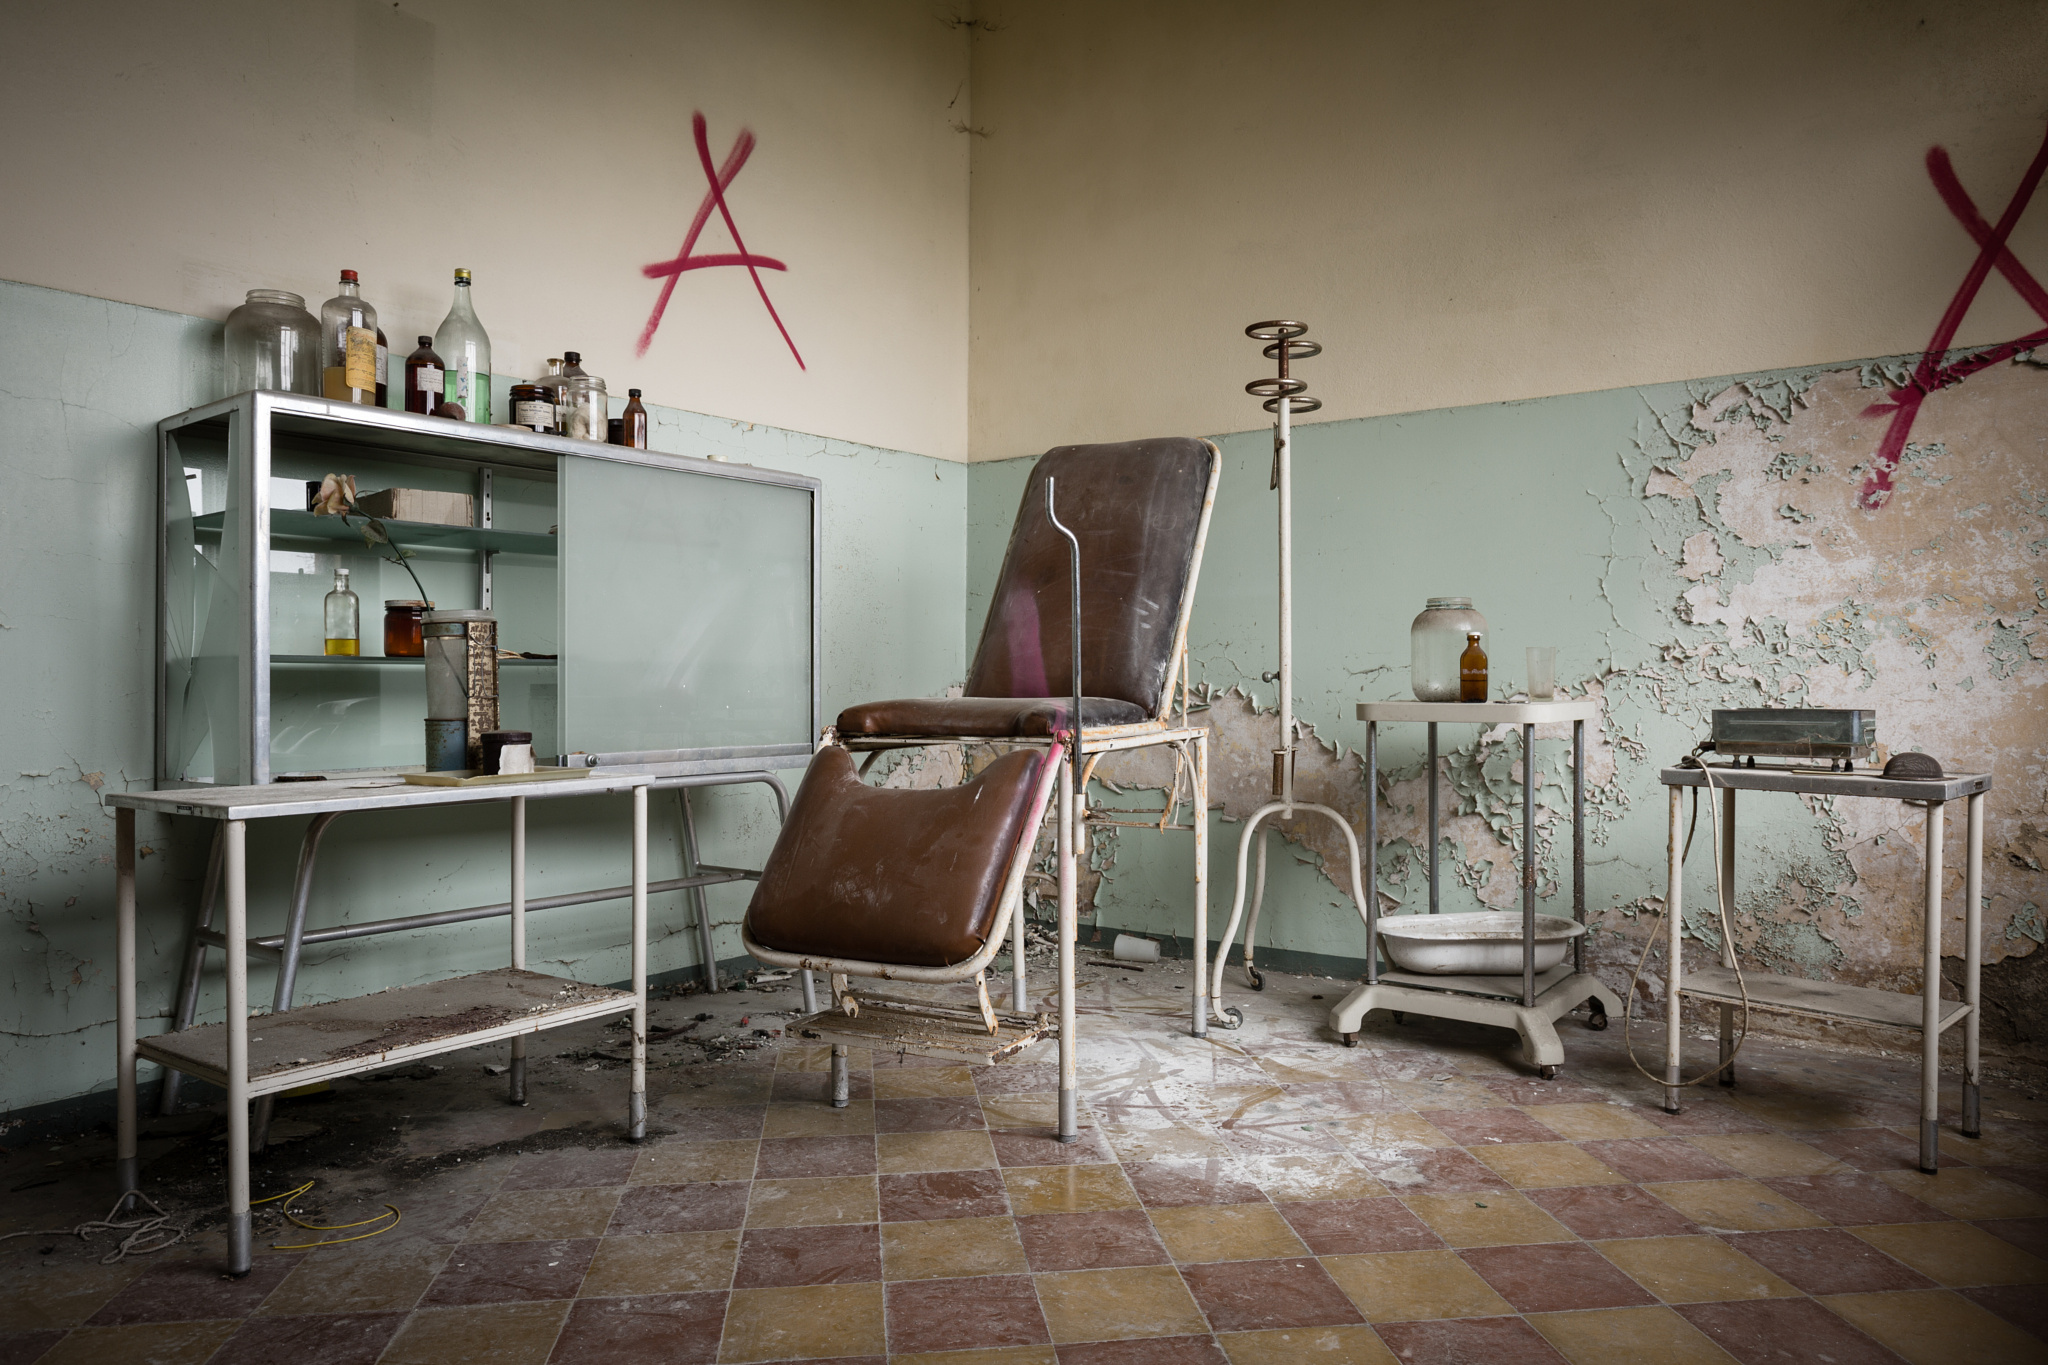 Abandoned psychiatric hospital 19